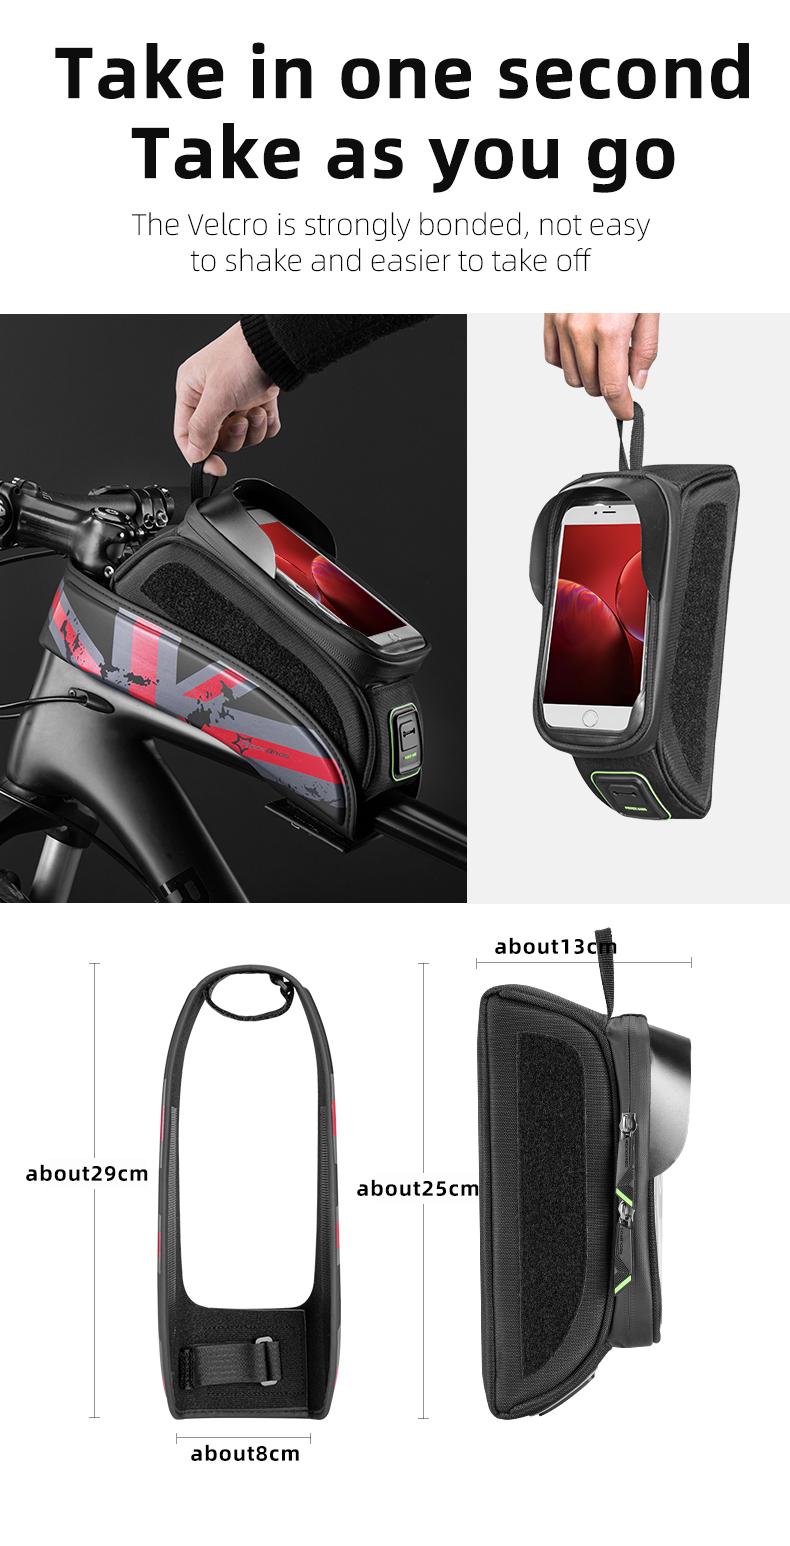 ROCKBROS Bike Bag Front Phone Bicycle Bag For Bicycle Tube Waterproof Touch Screen Saddle Package For 5.8 /6 Bike Accessories